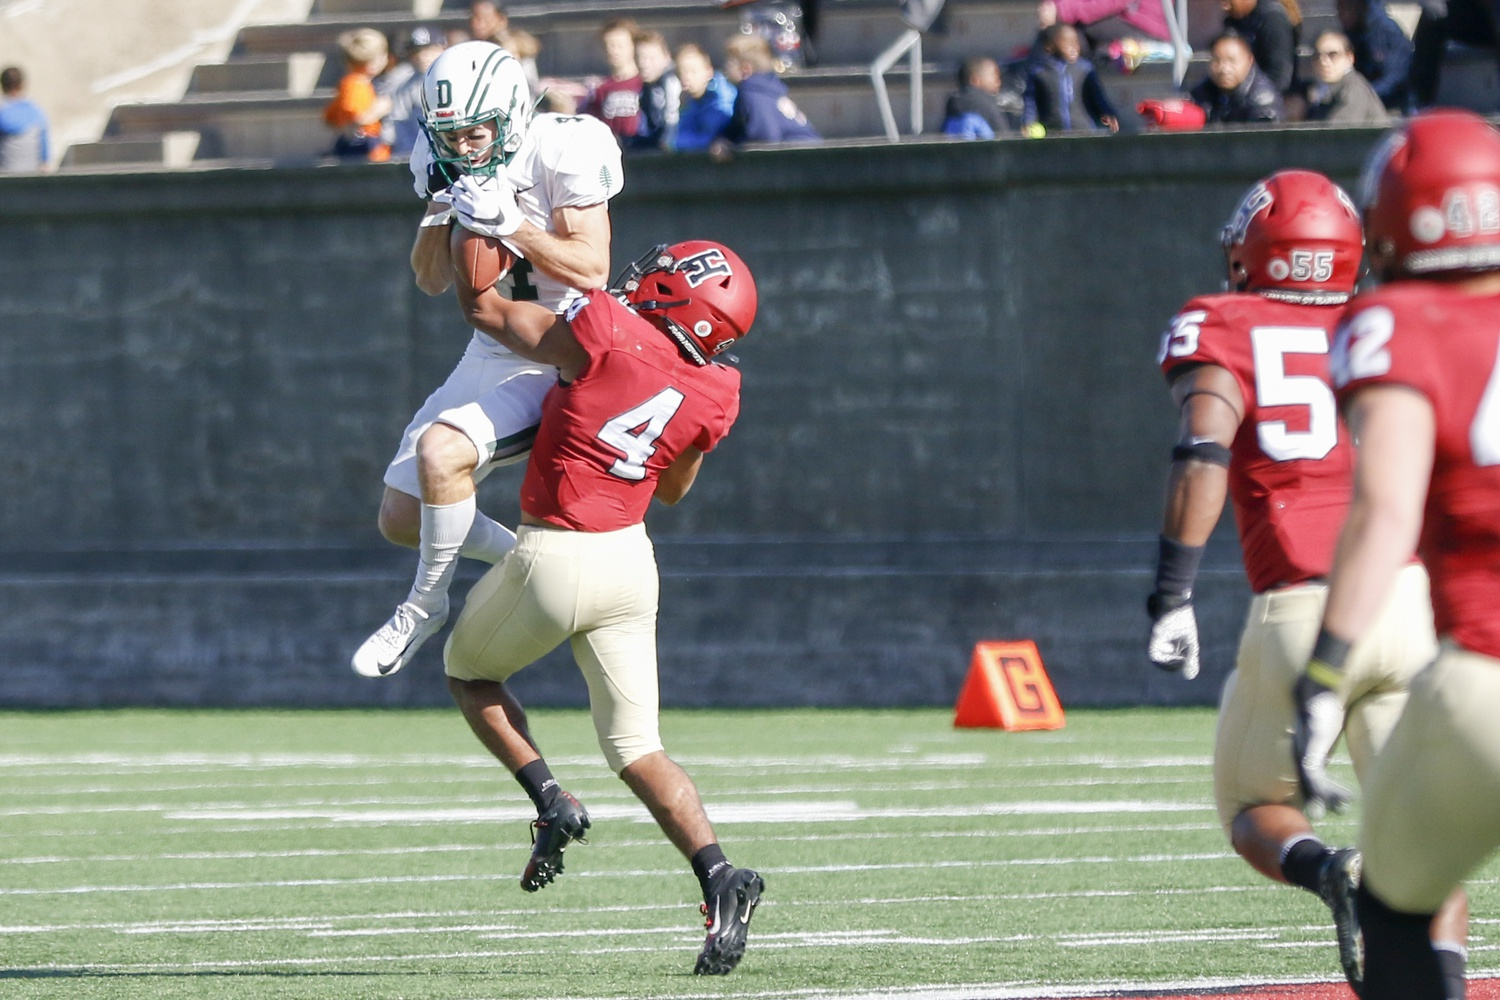 Big Green wide out Drew Estrada, makes a grab at a deep pass, only to be stripped by Harvard's Max Jones as he falls to the ground. The change of possession, listed as an interception, is Jones' first of the season.